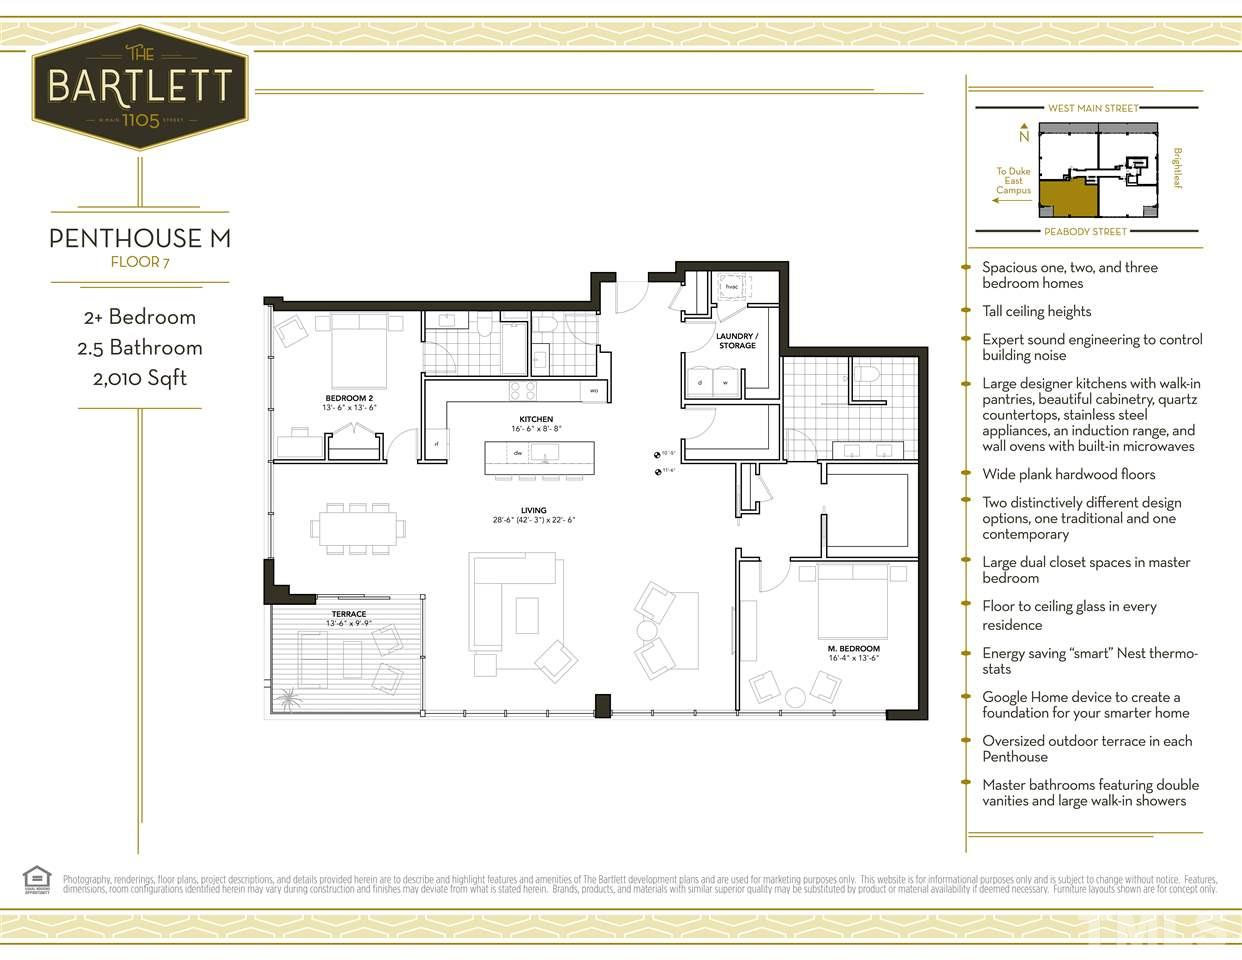 Penthouse residences are customizable - work with our architect to create your own dream home!  This floorplan shows one idea of how this residence could look, but with a Penthouse at The Bartlett, the sky is the limit!